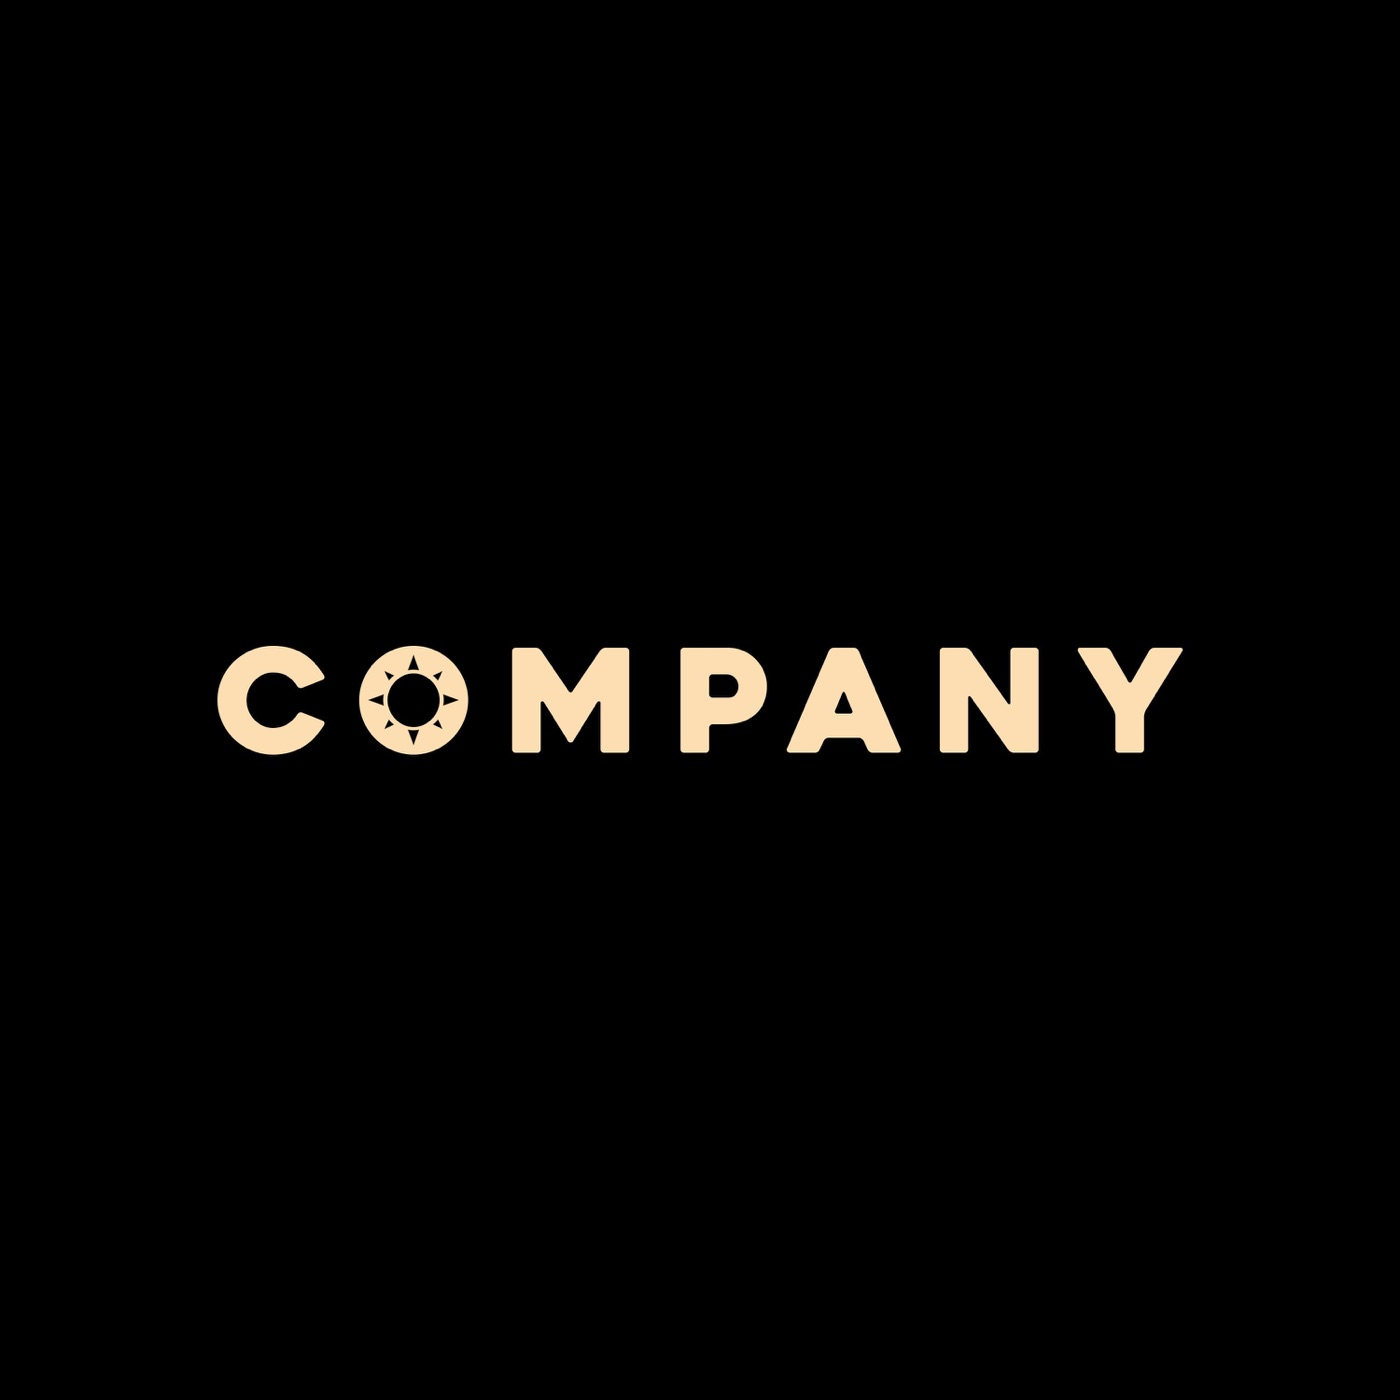 Light Up The Sky - Company [single] (2018)